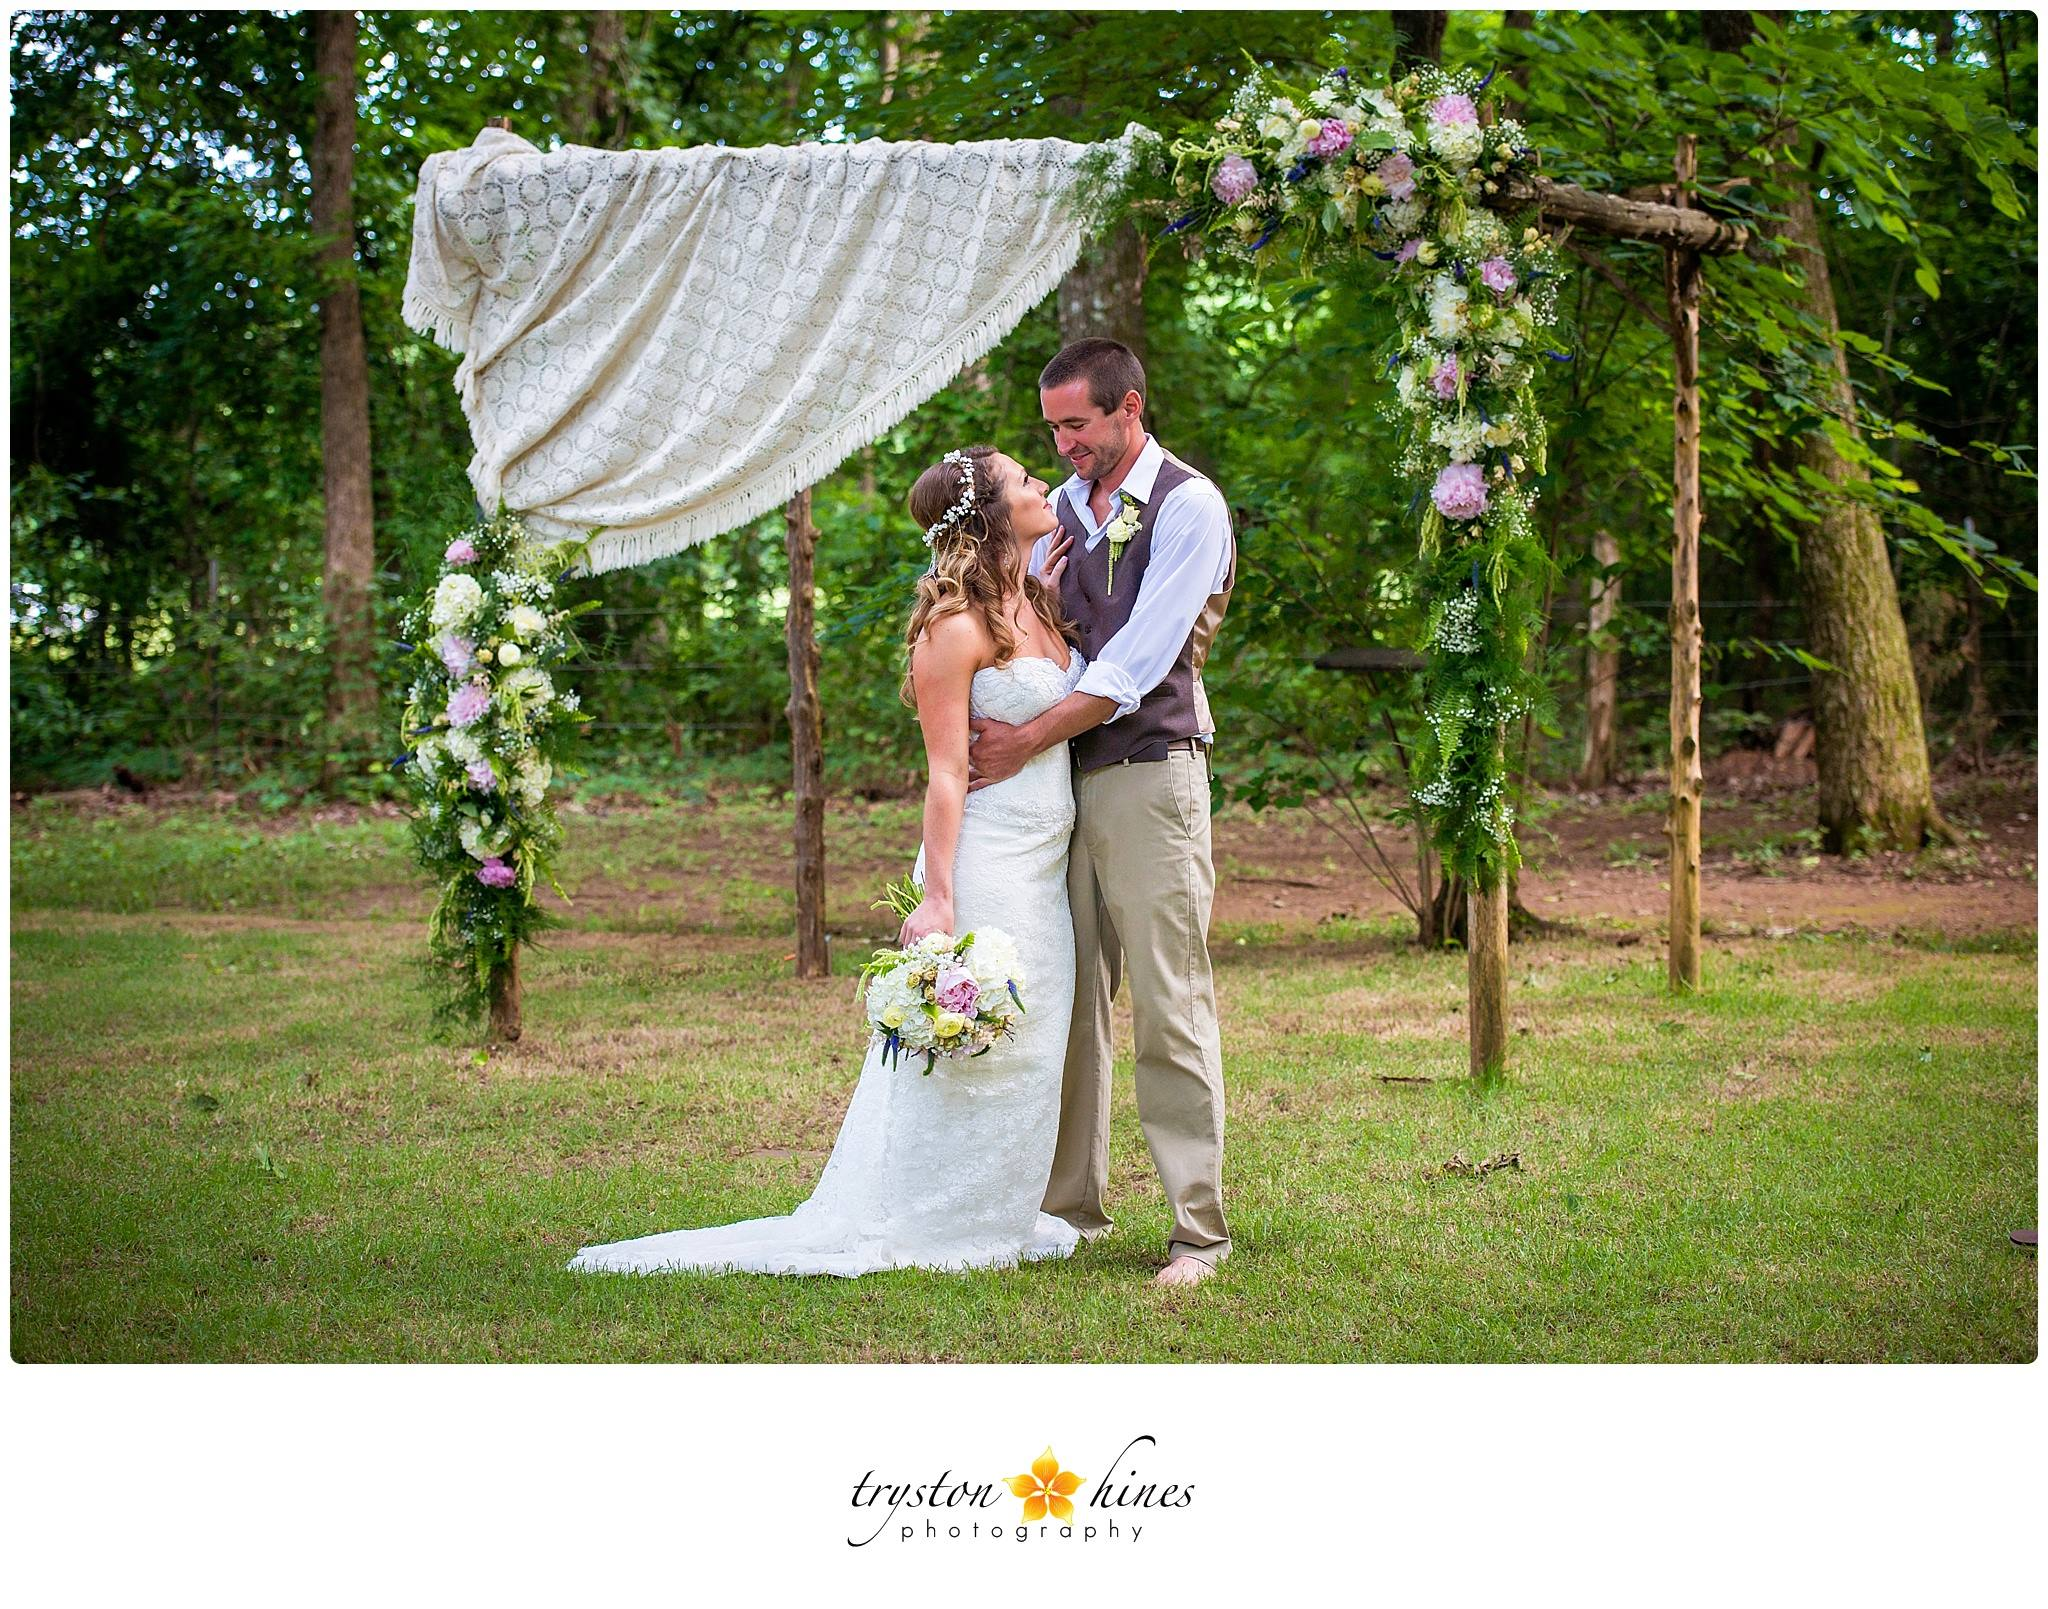 Tryston Hines Photography , from  Breanna + Bryan 's wedding